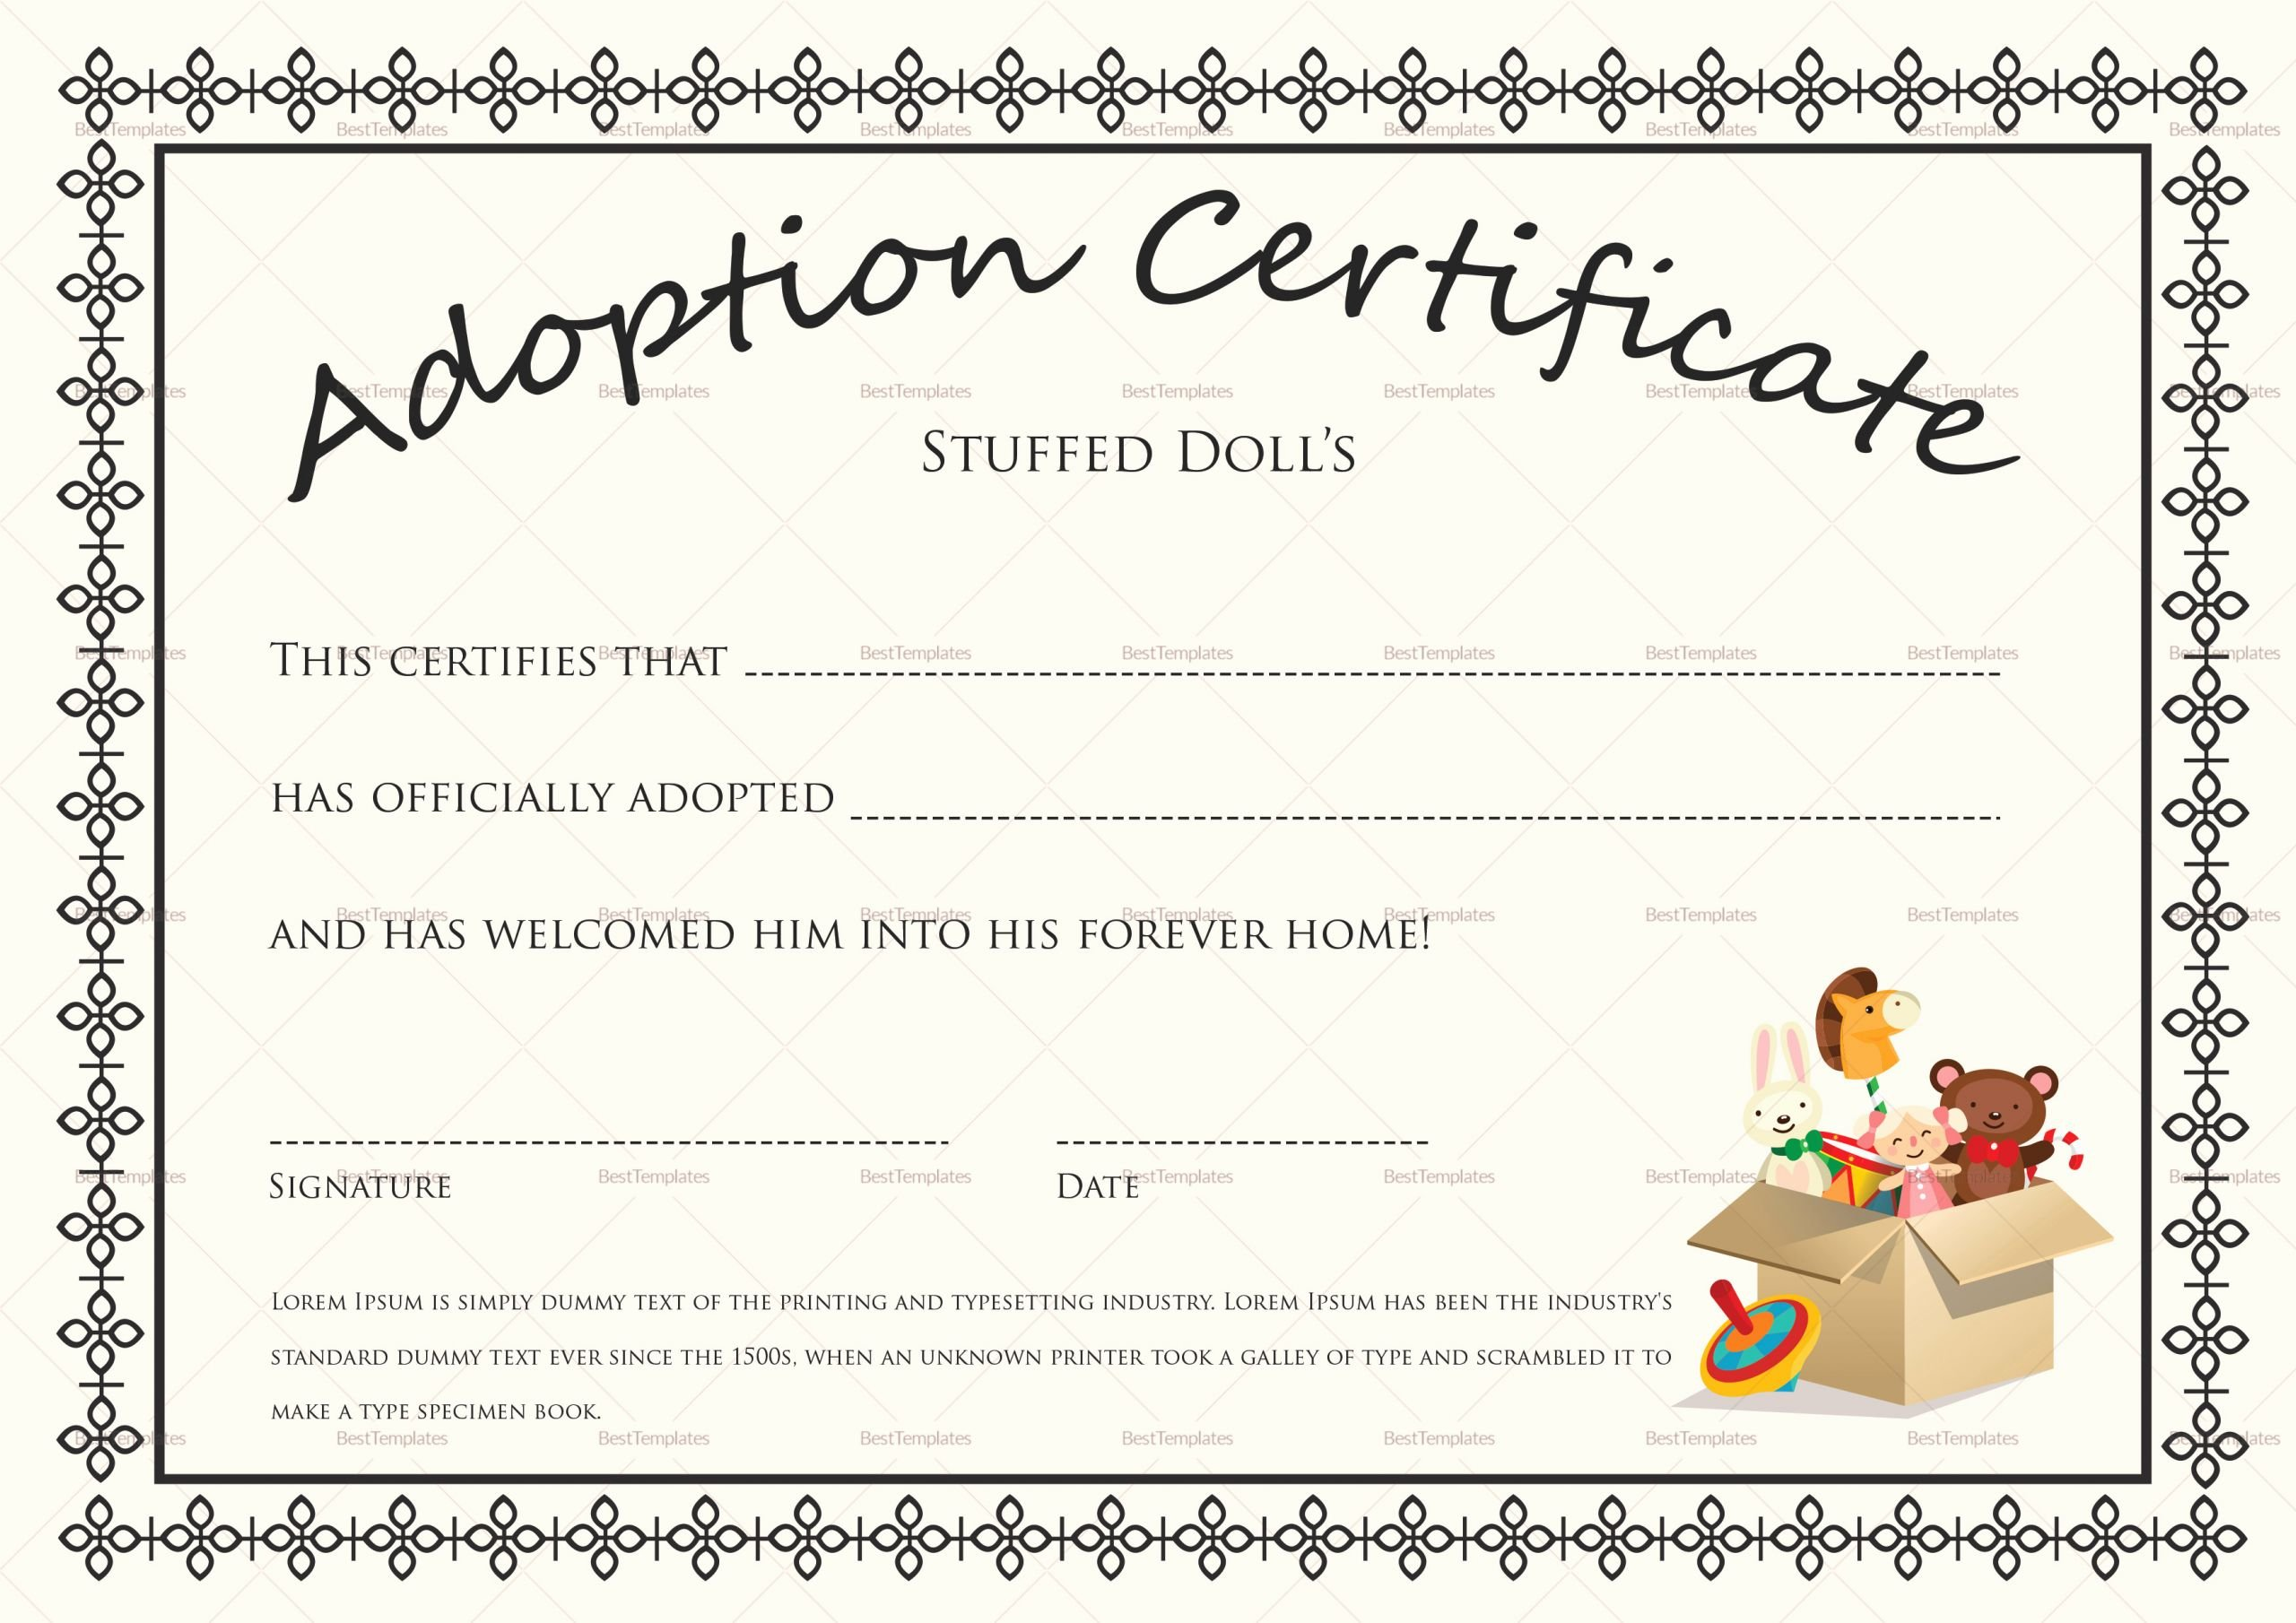 Dog Adoption Certificate Template Free Fresh Doll Adoption Certificate Design Template In Psd Word